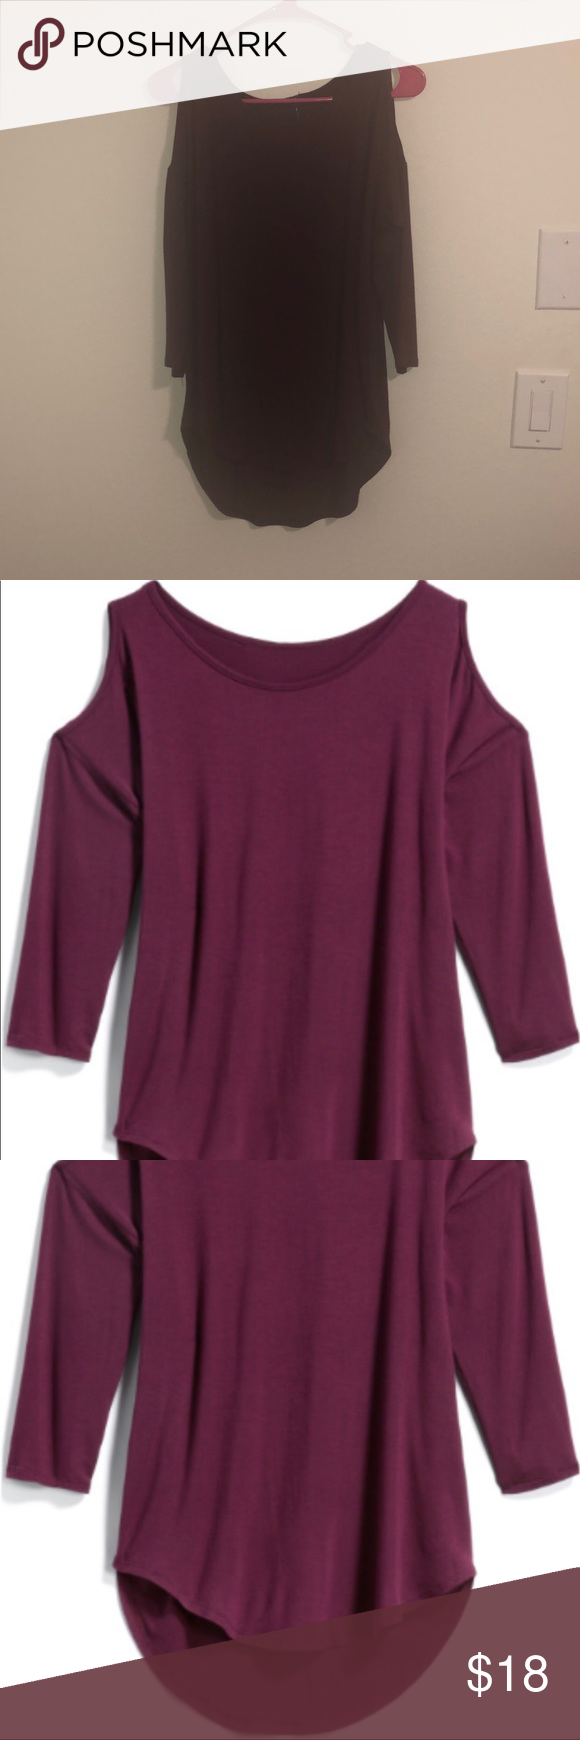 a7c54bf659da94 Brand new Aubrey cold shoulder knit top Brand new never worn from a stitch  fix.